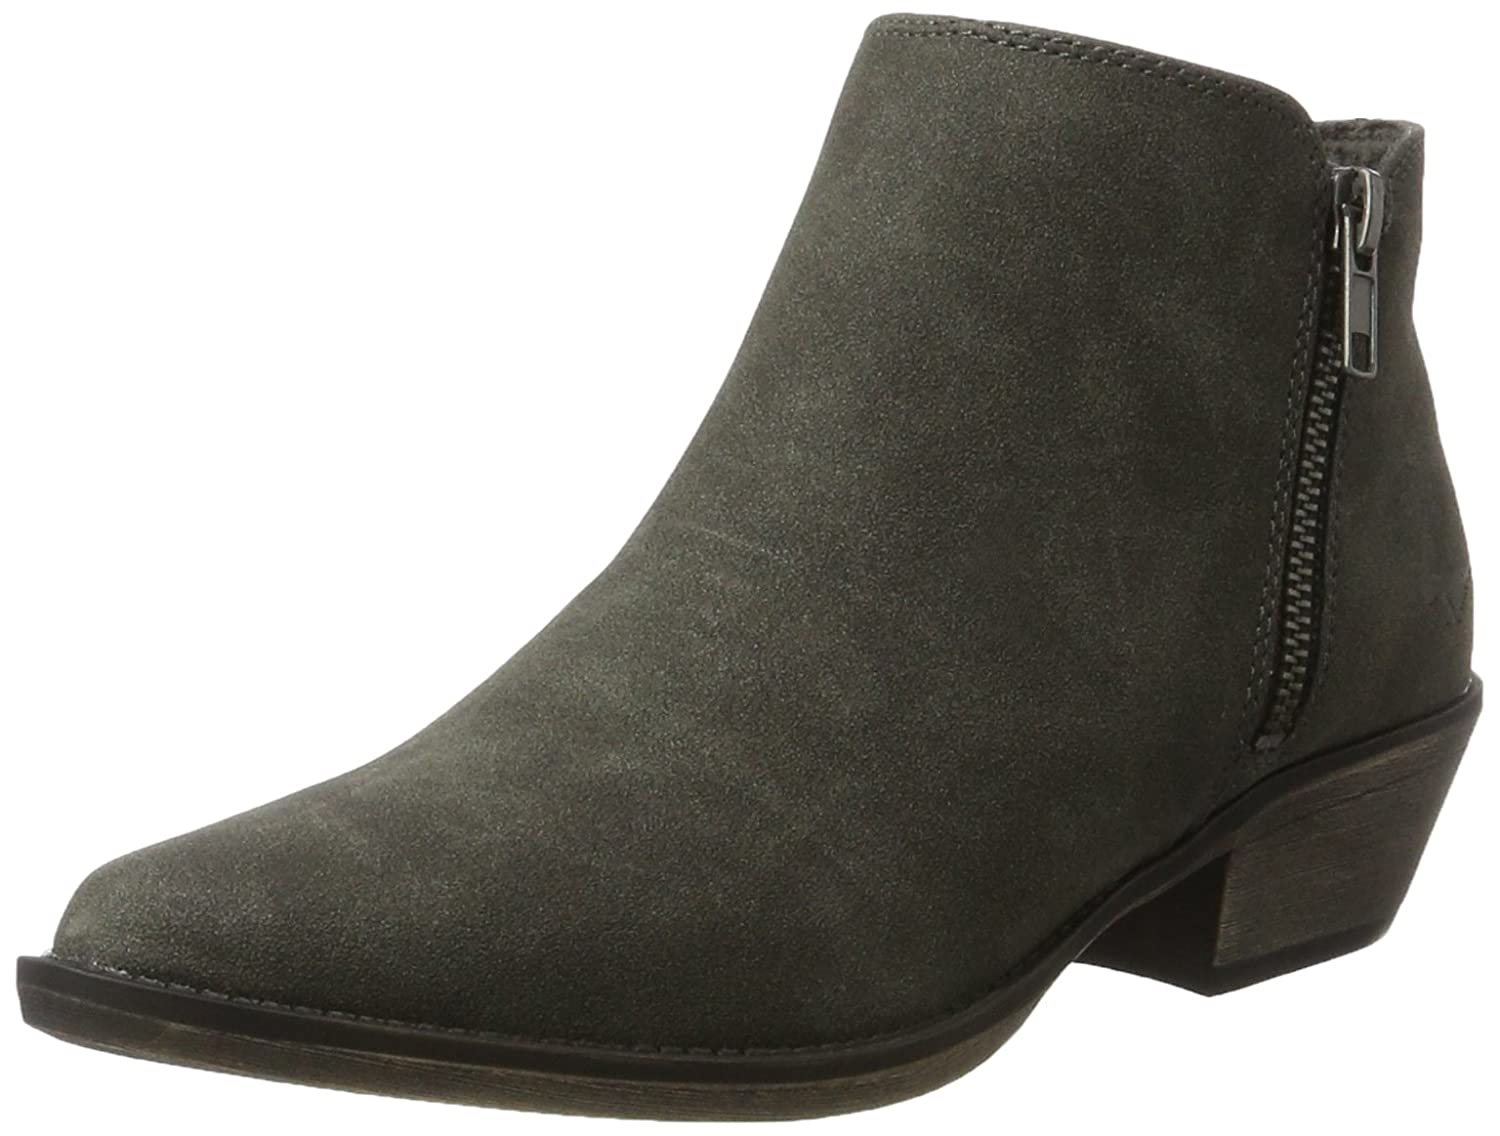 Rocket Dog Akron, Botas Chelsea para Mujer41 EU|Gris (Charcoal Charcoal)